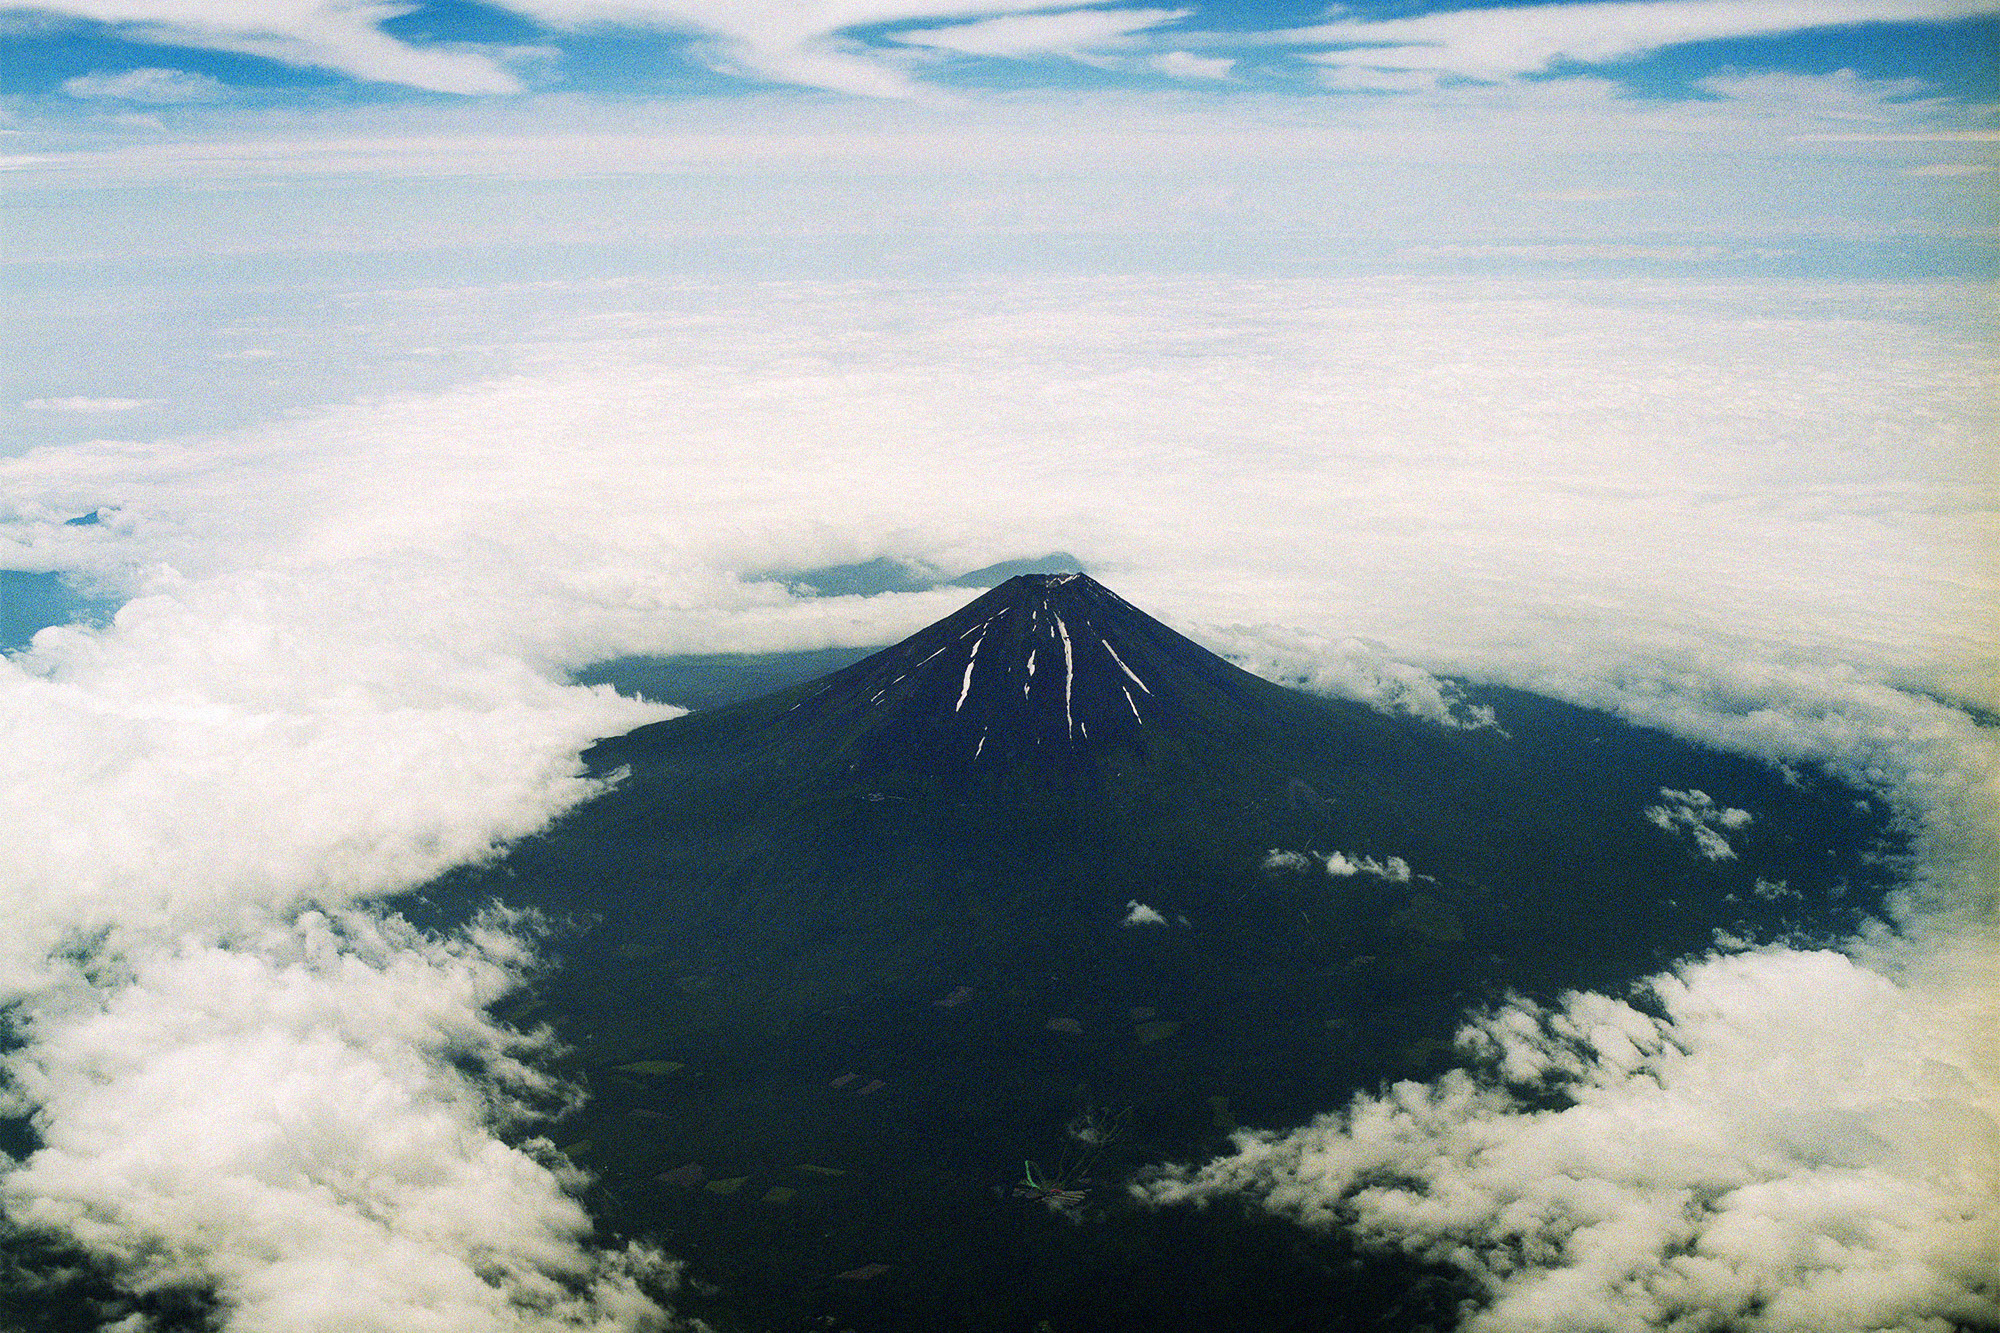 Mt.Fuji, the highest mountain in Japan. It is said that this area was one of the U.S. Army's targets during World War 2. Shizuoka, June 2015.